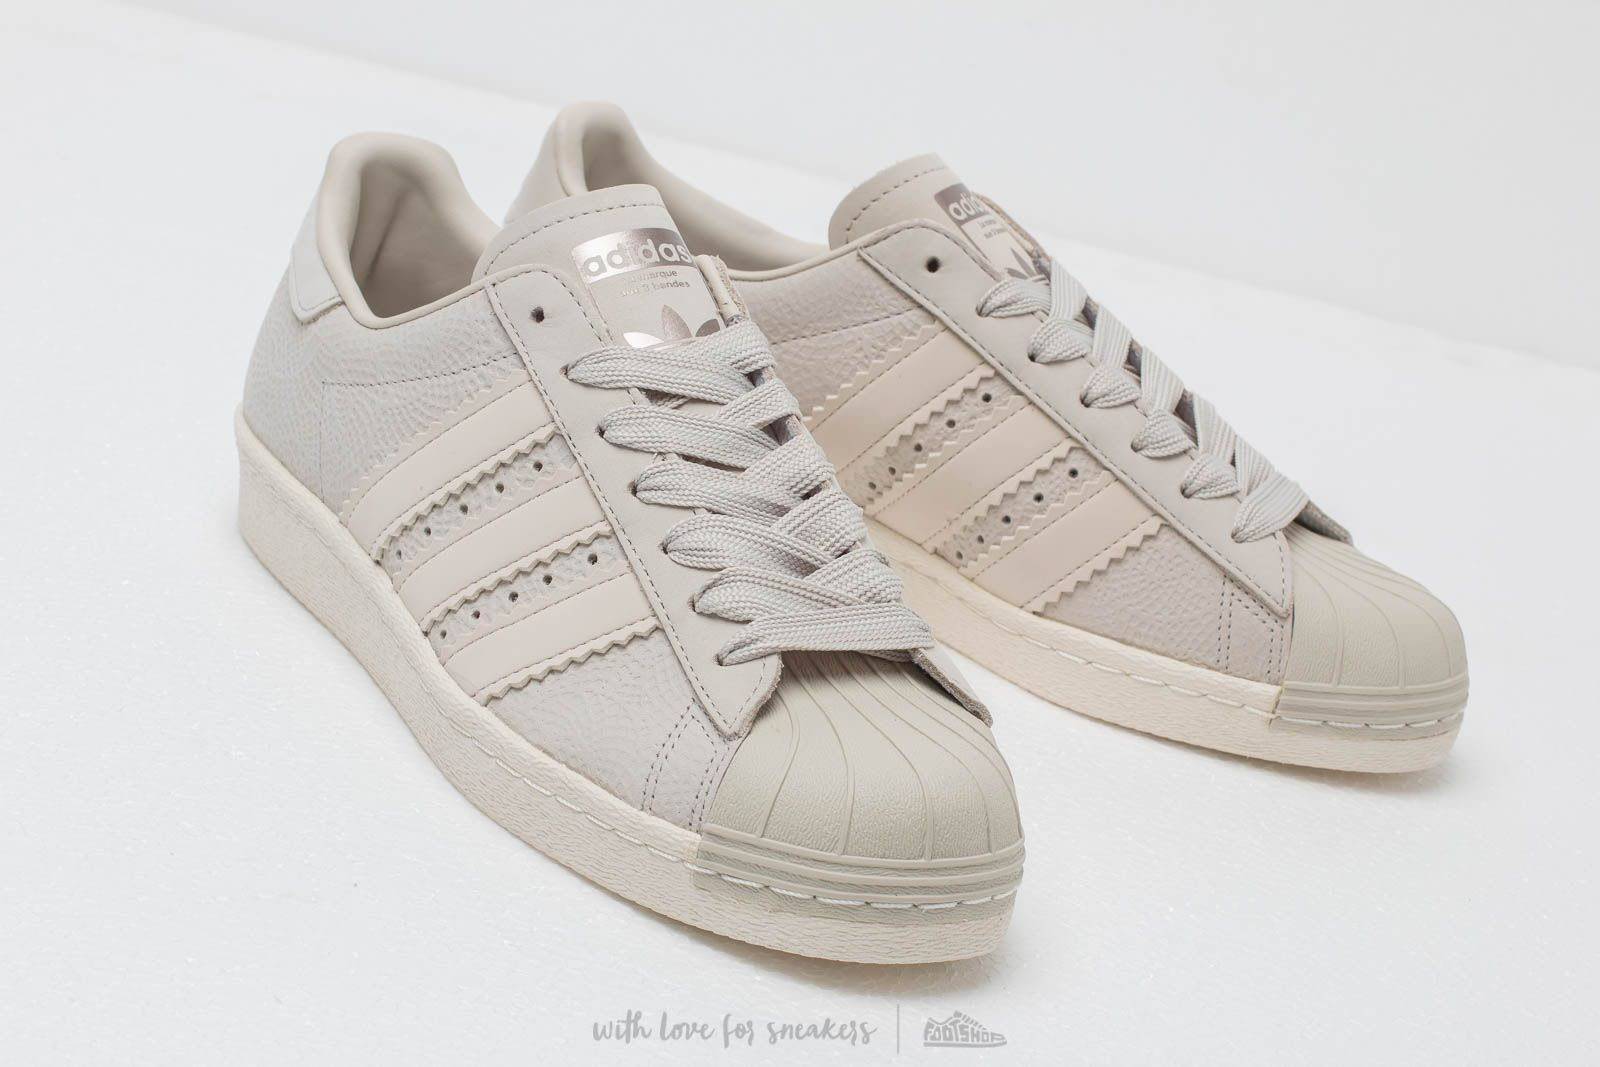 adidas Superstar 80S W Cream Brown Cream Brown Off White | Footshop